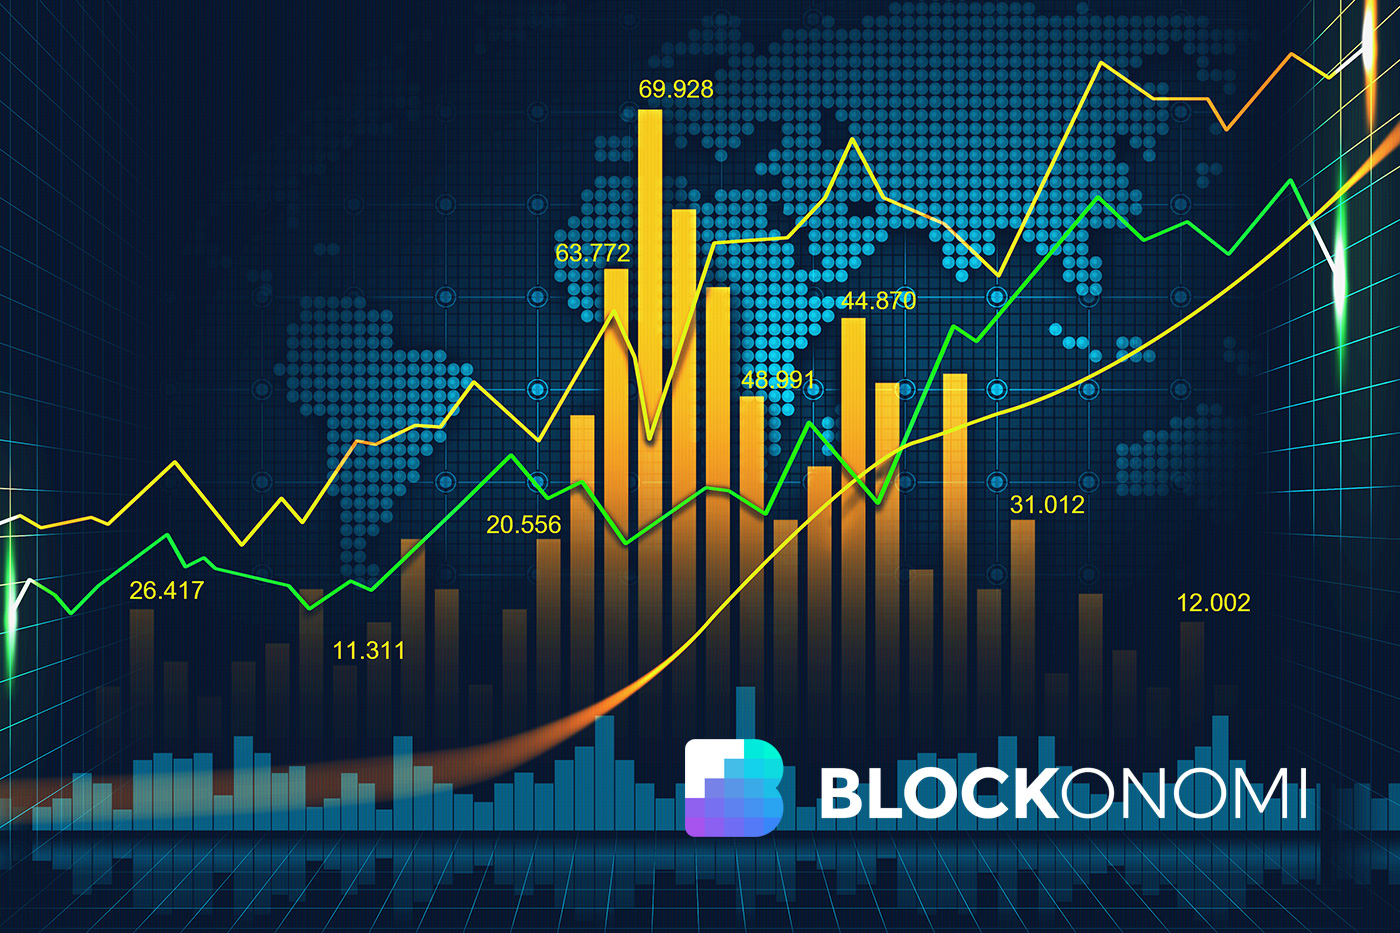 Btc forex trading for beginners